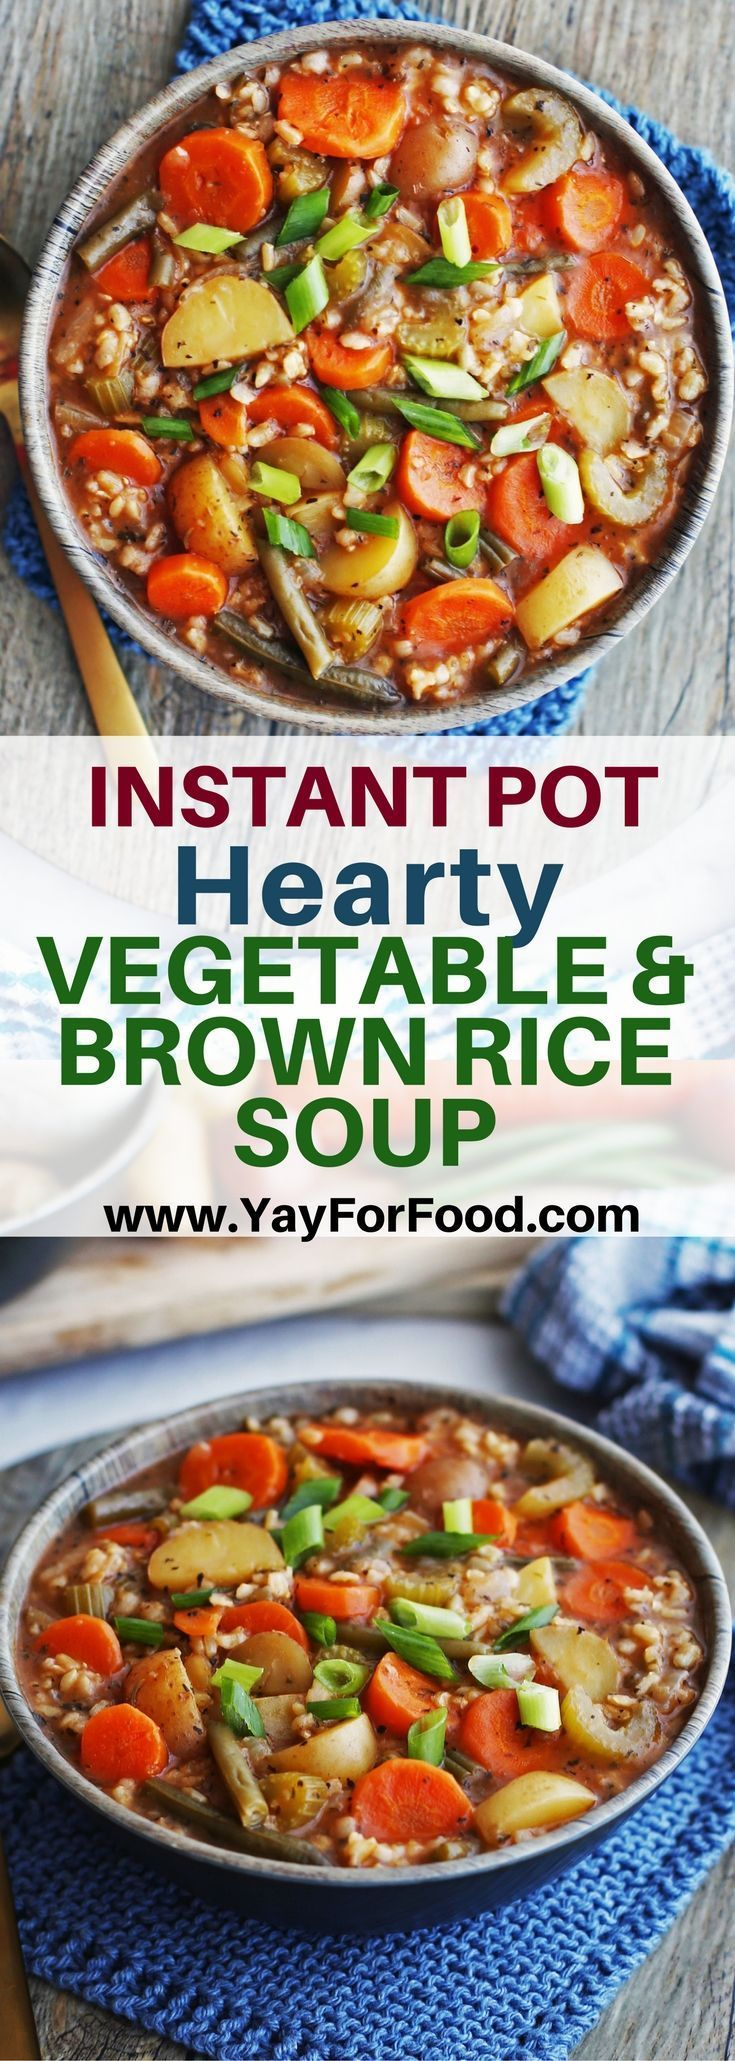 INSTANT POT HEARTY VEGETABLE AND BROWN RICE SOUP Delicious, comforting, and filling. This soup is full of healthy fresh vegetables and fiber-rich brown rice! #soup | #ip | #instantpot | #instantpotrecipes | #vegetablesoup | #vegan | #recipe |#healthyrecipe | #glutenfree | #vegetarian | #dinner